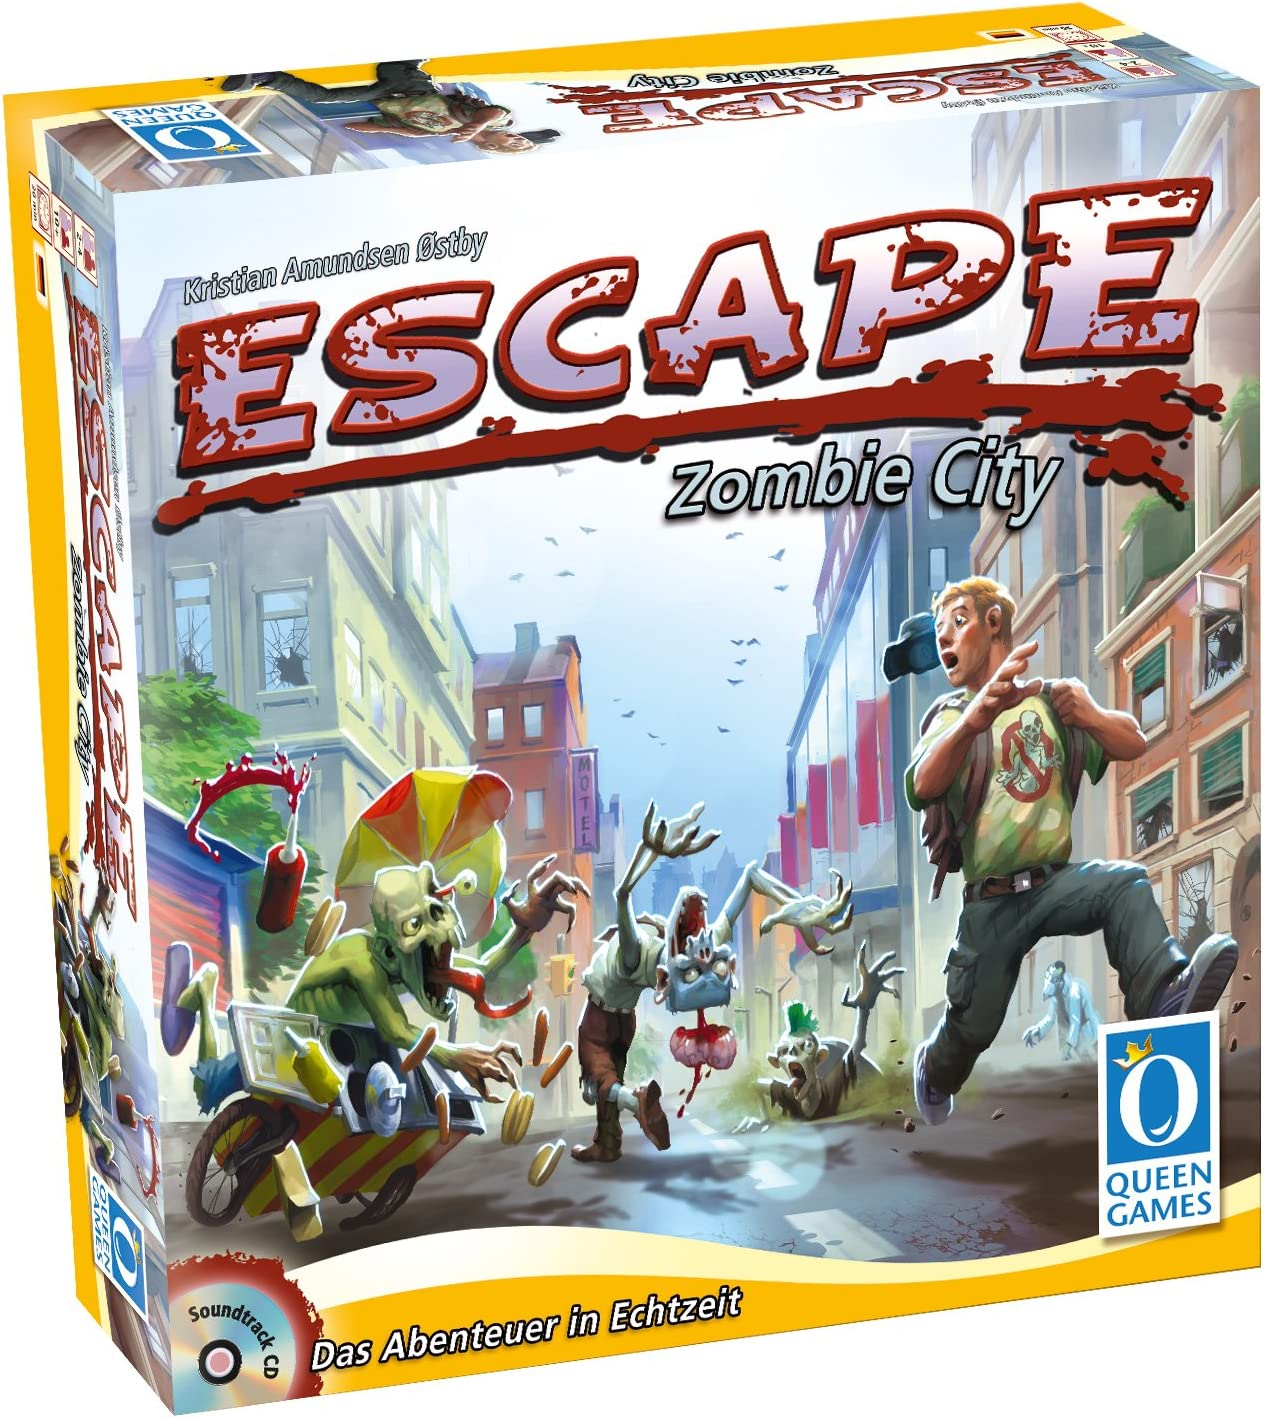 Queen Games 10030 - Escape - Zombie City: Amazon.es: Juguetes y juegos